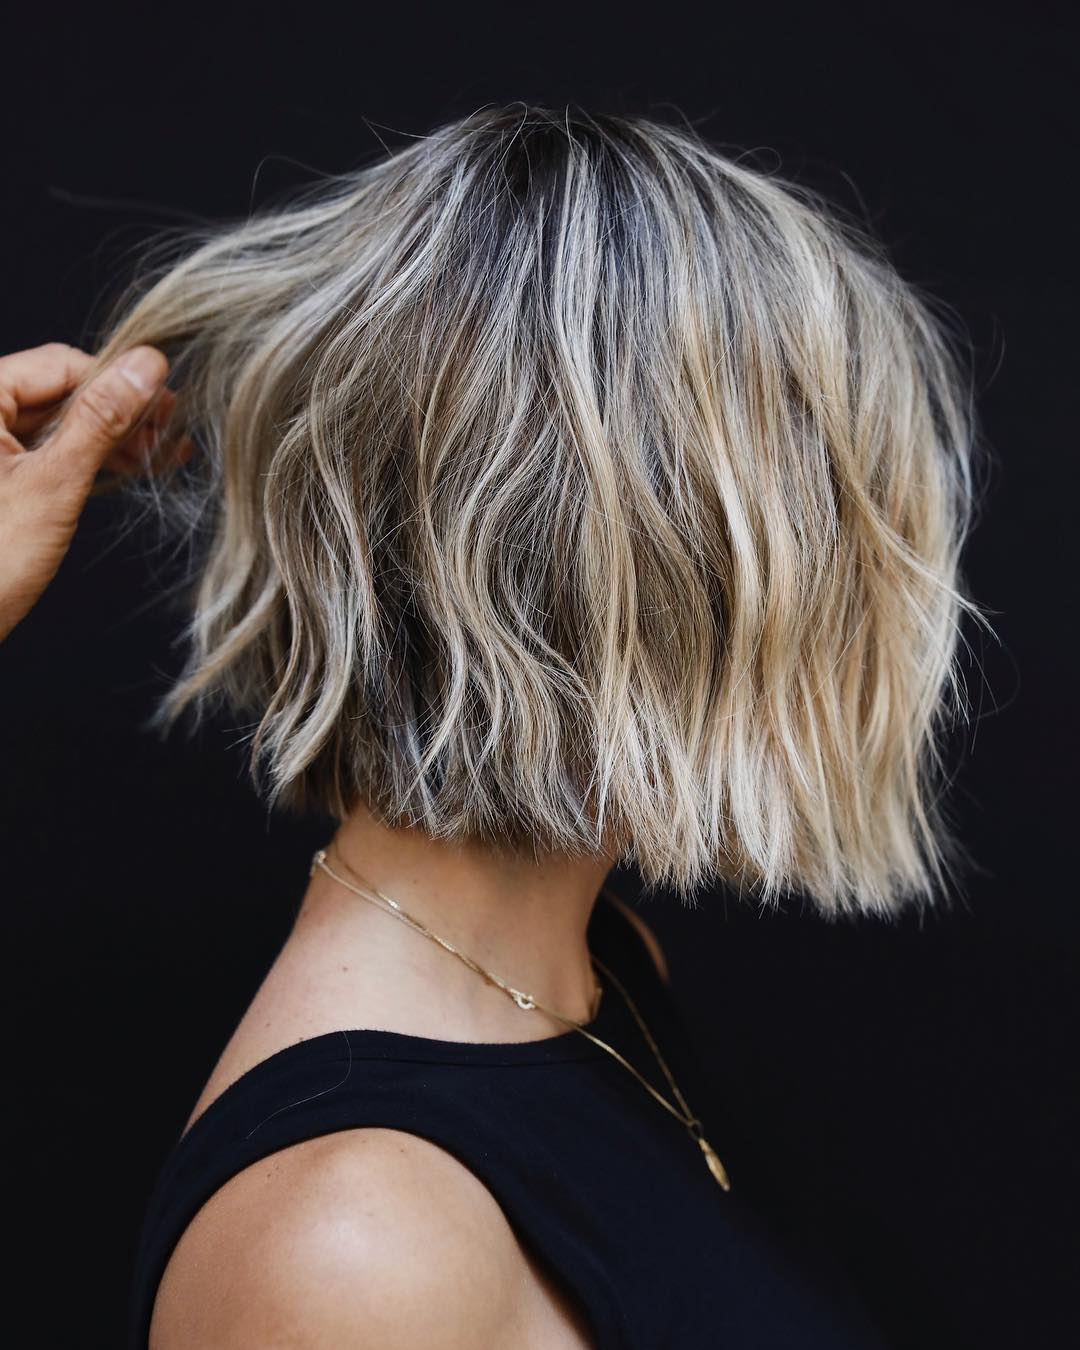 Best Short Bob Haircuts for Thick Hair, Women Short Hairstyles